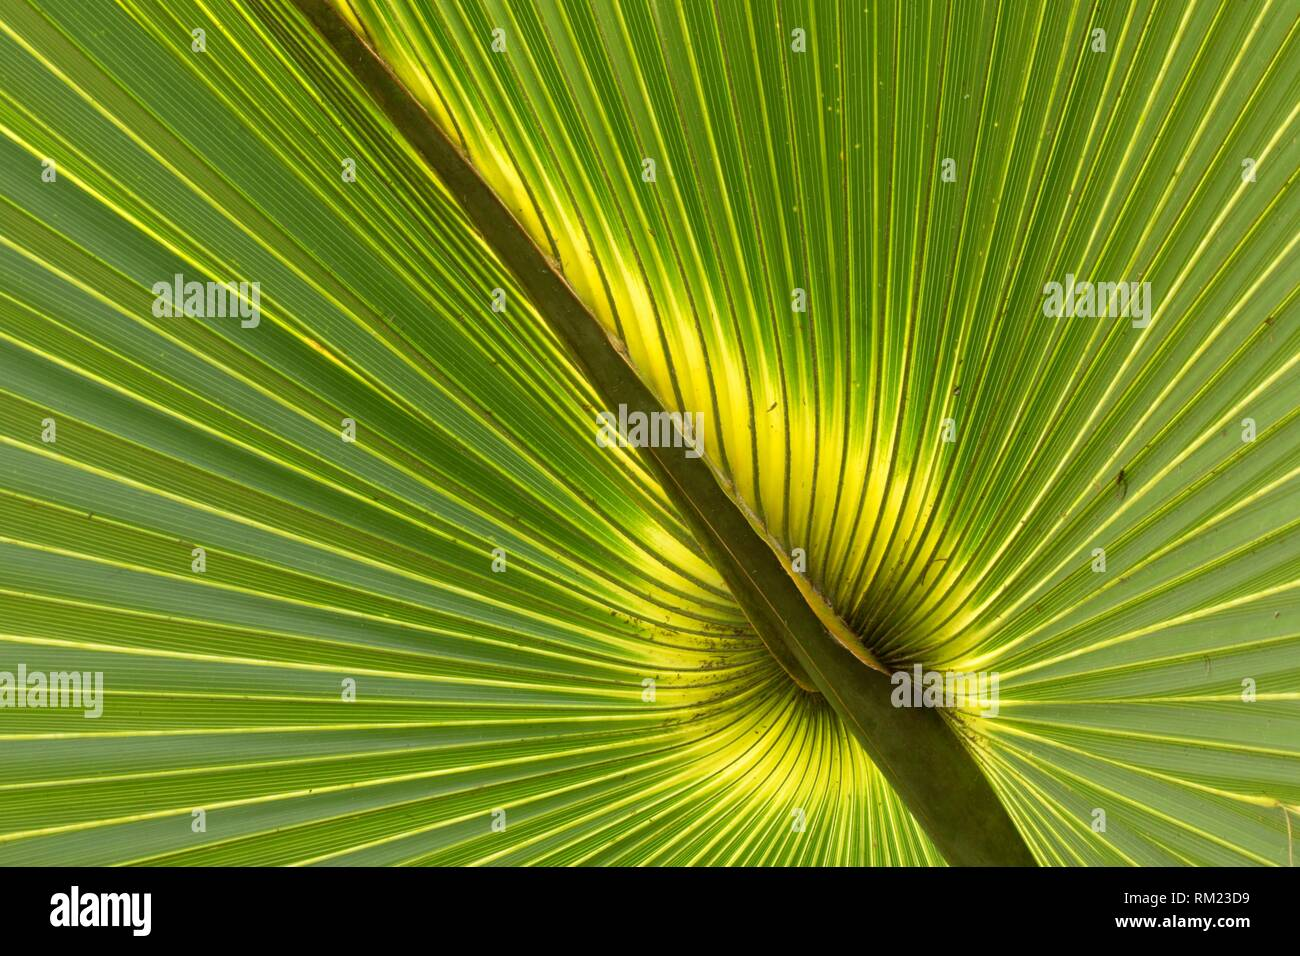 Cabbage palm frond, Enchanted Forest Sanctuary, Florida. - Stock Image